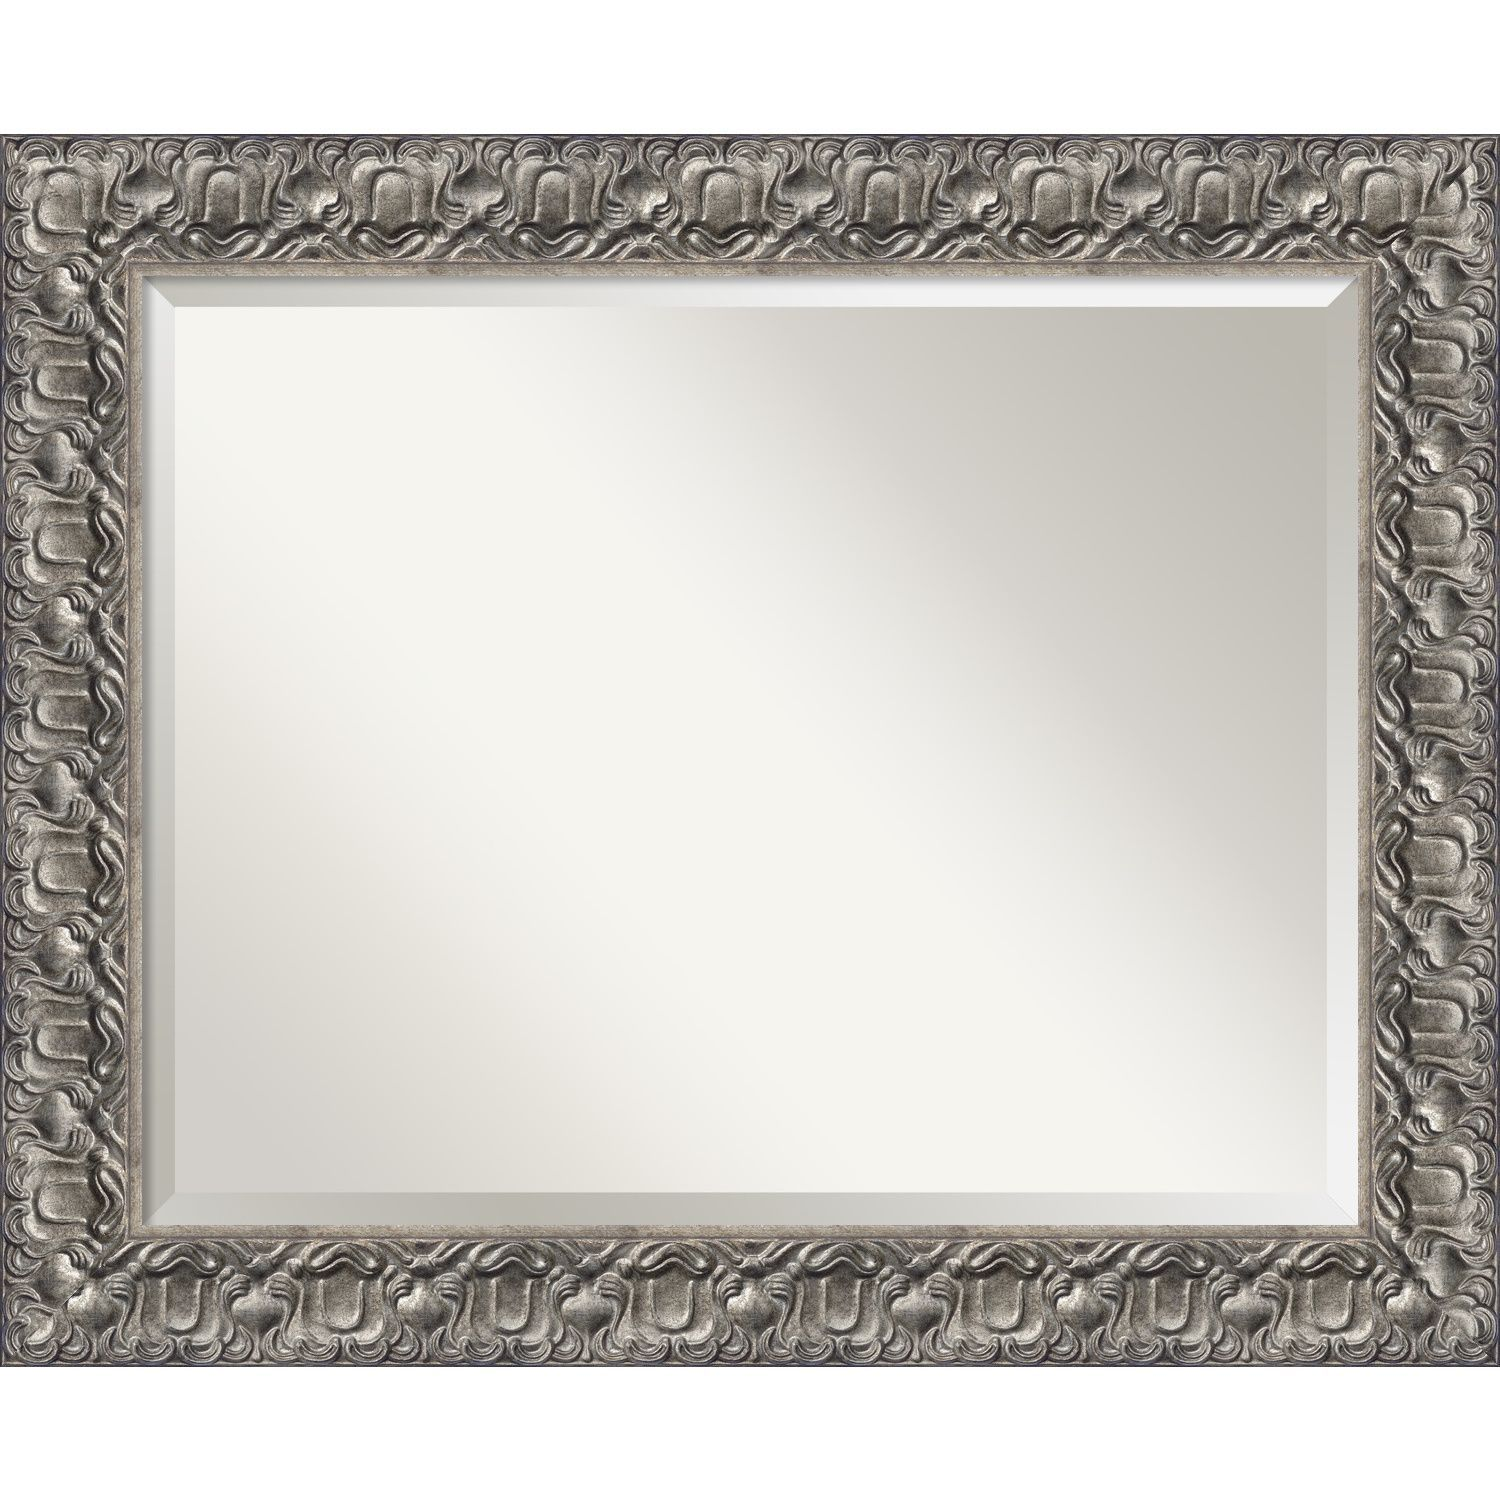 This mirror features an ornate silver frame with a gentle floral ...